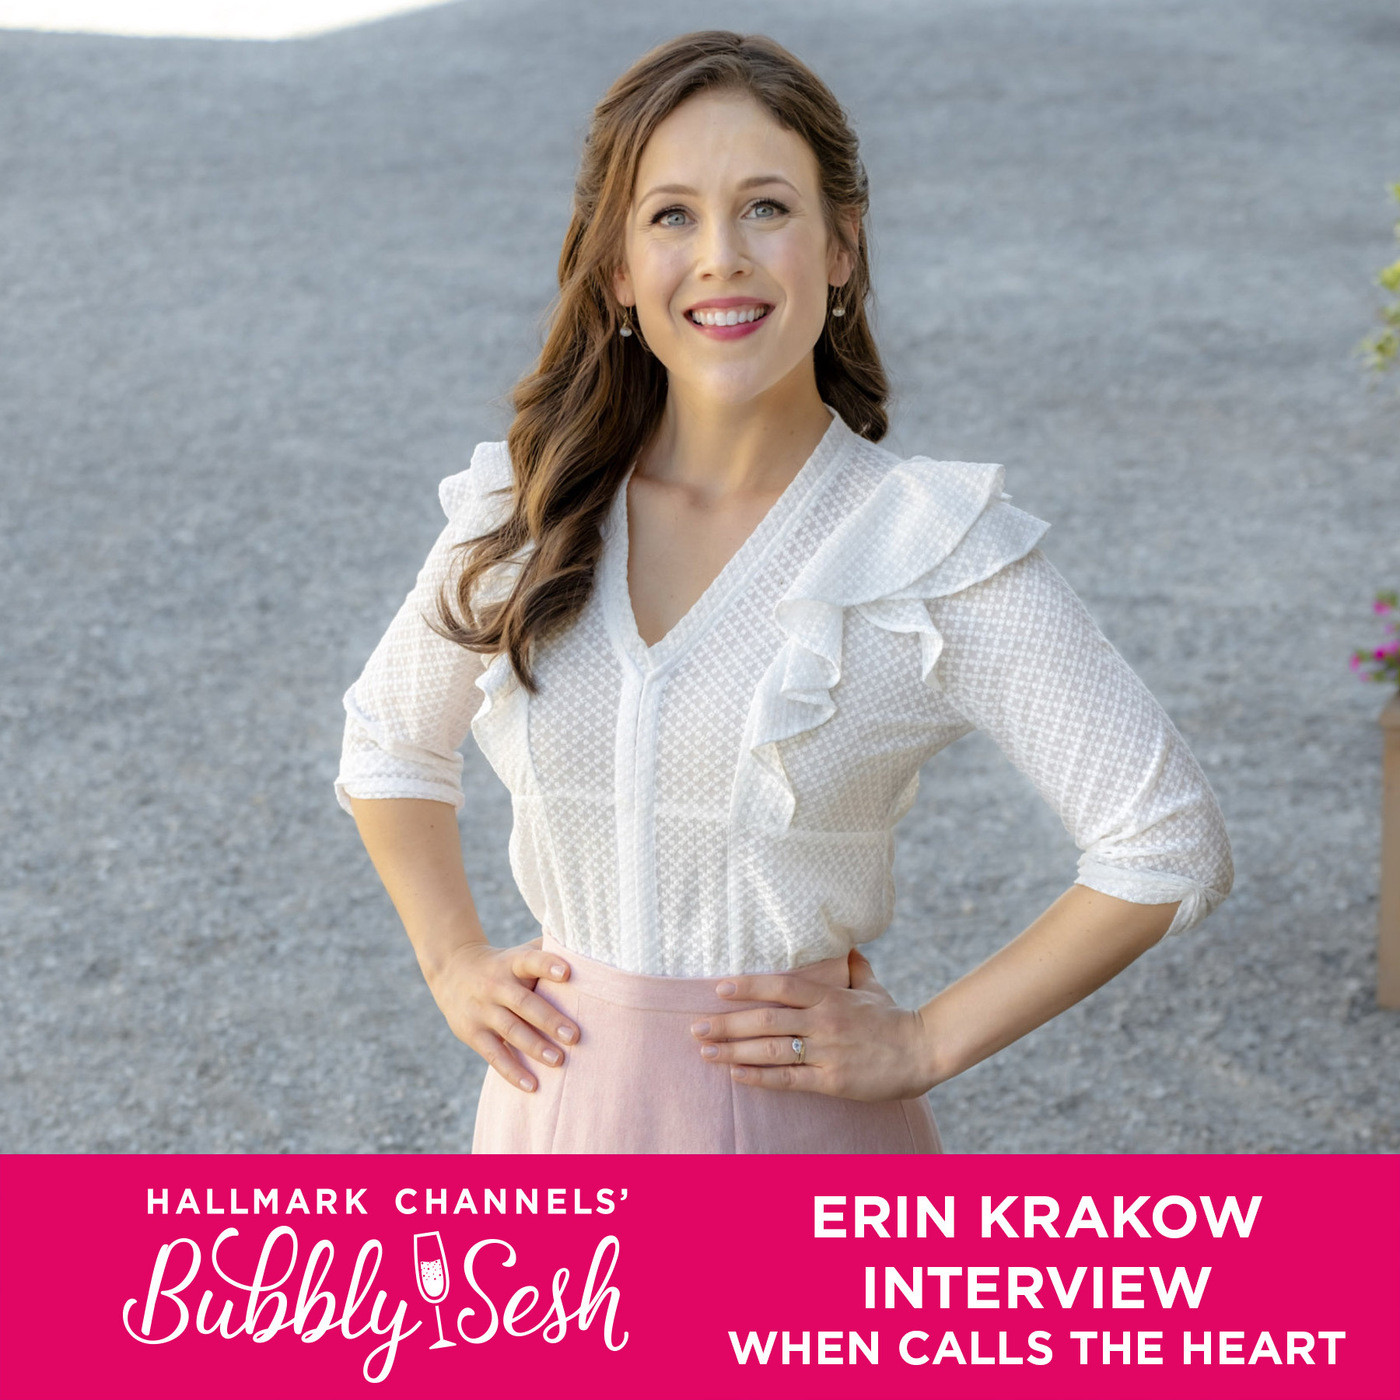 Erin Krakow Interview: When Calls the Heart | Hallmark Channels' Bubbly Sesh